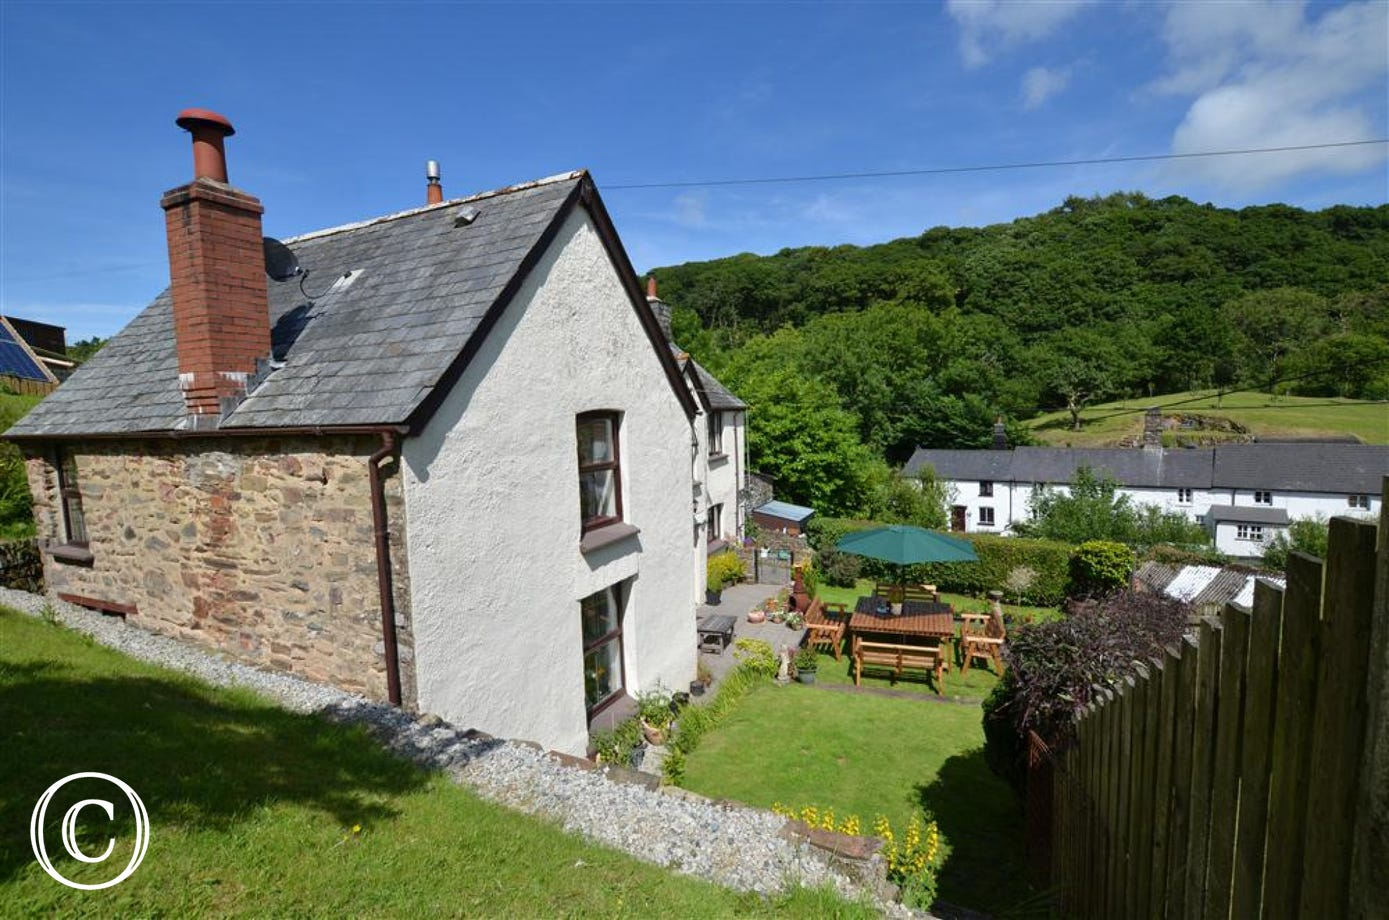 A most wonderful location for those wishing to explore the untamed beauty of Exmoor with its abundance of wildlife